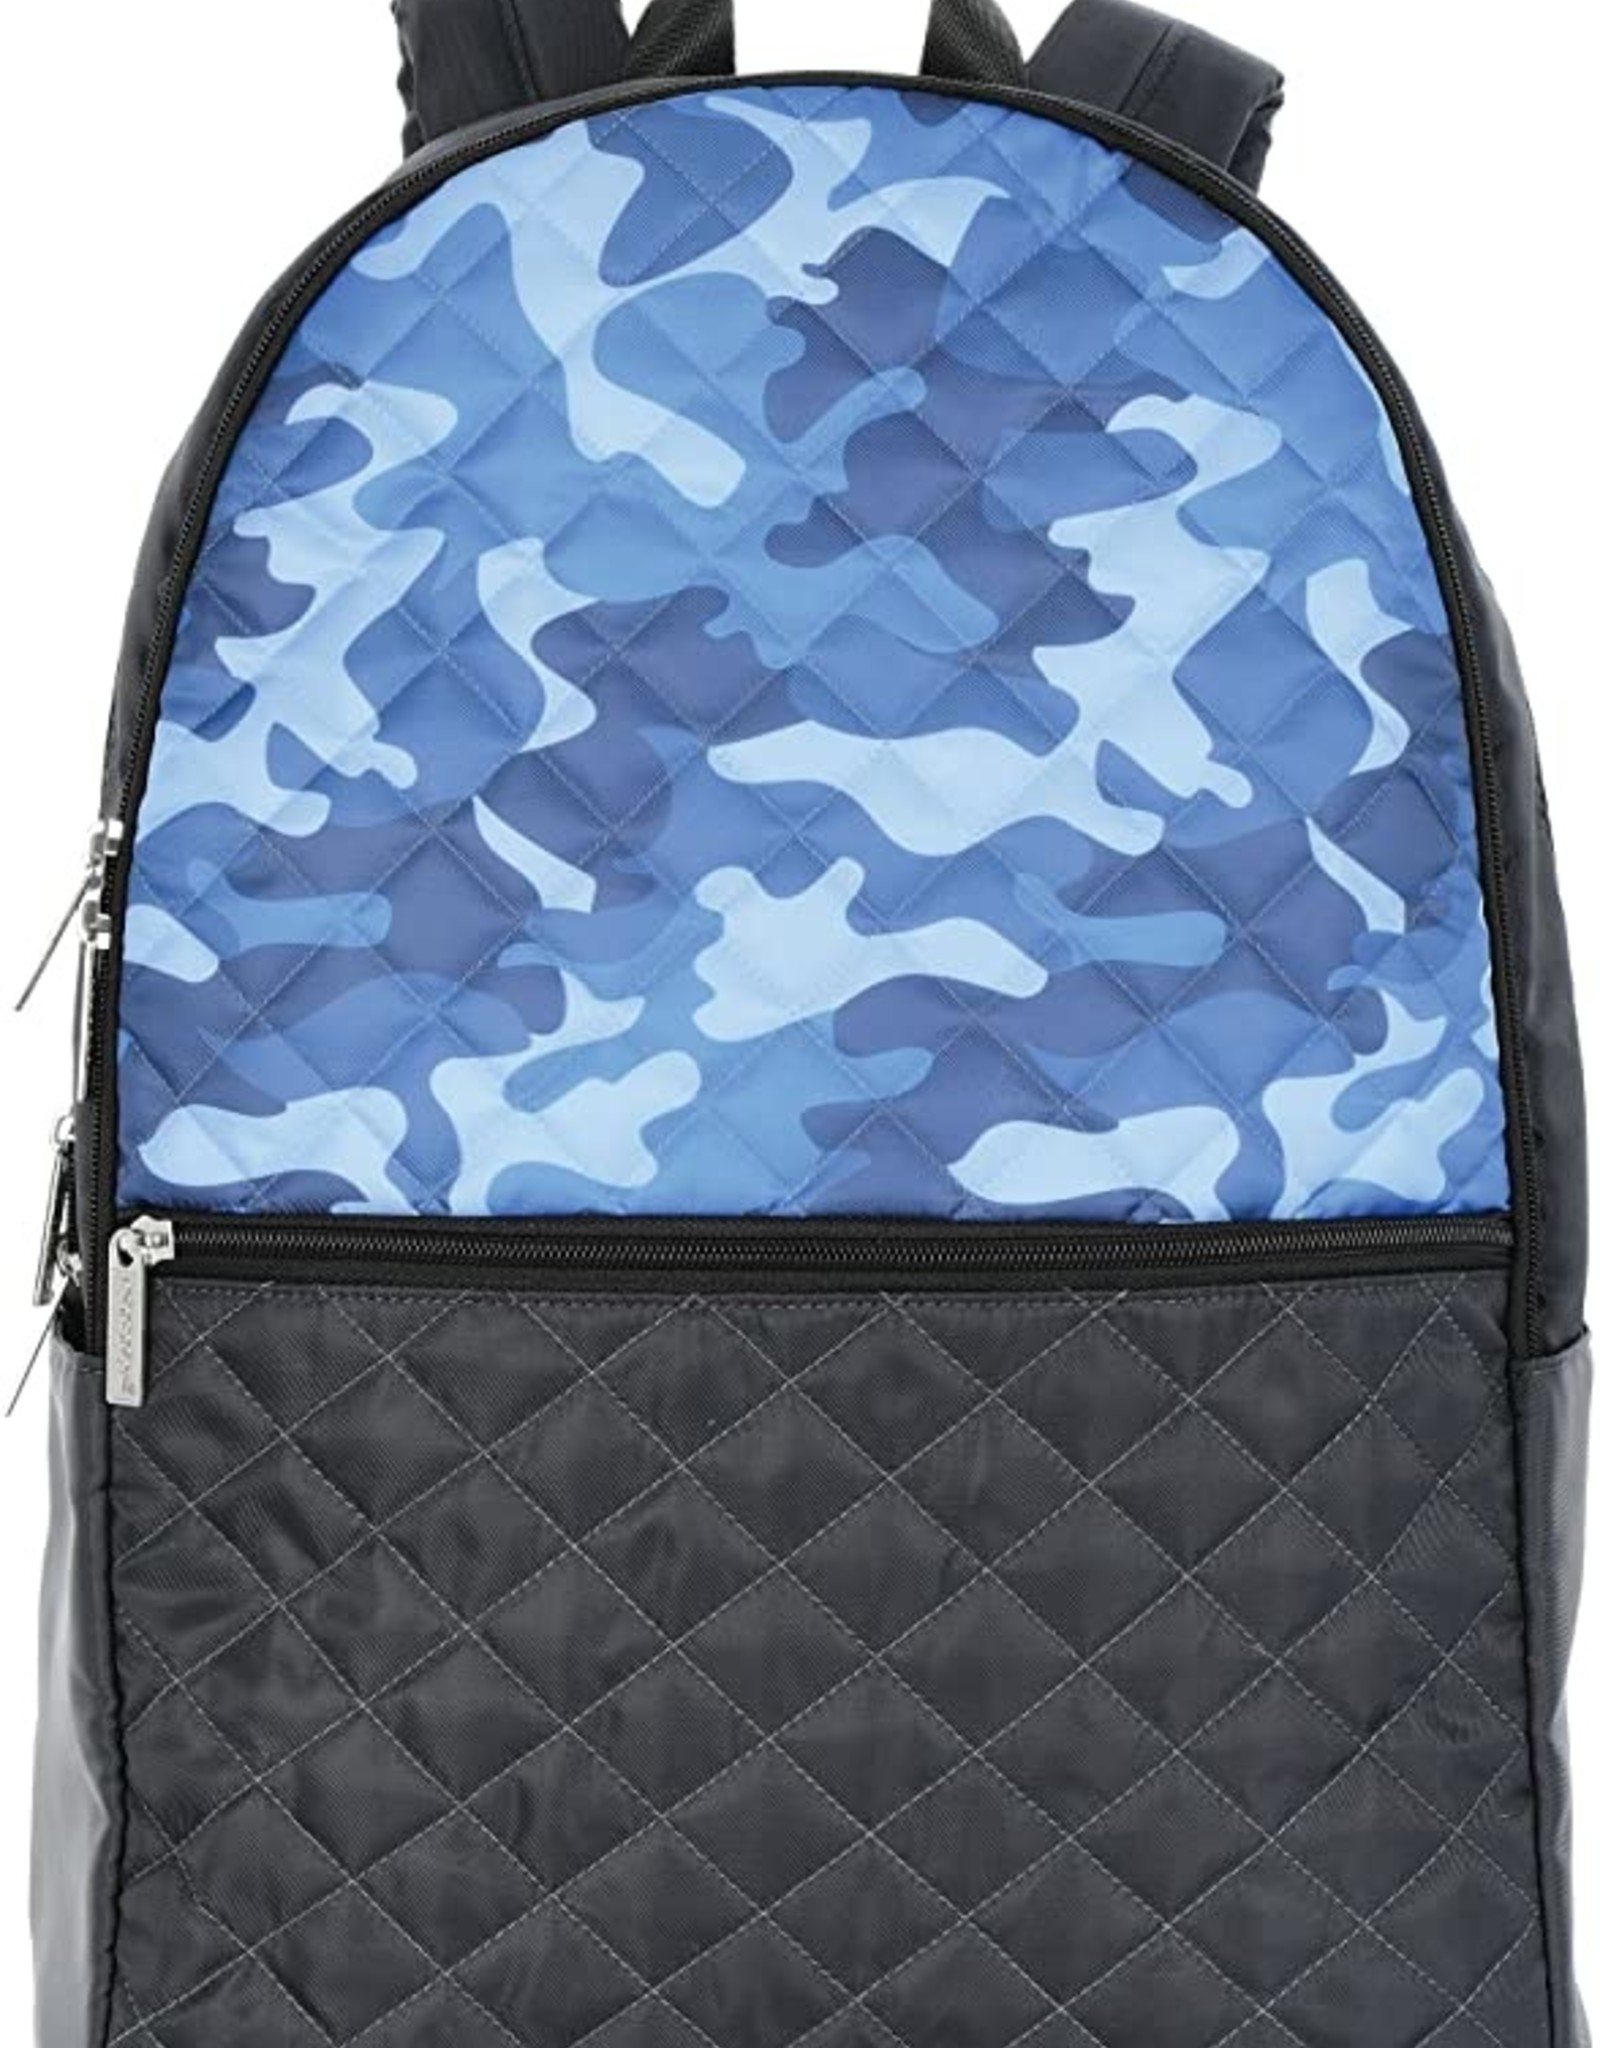 Iscream Blue Camo Quilted Backpack